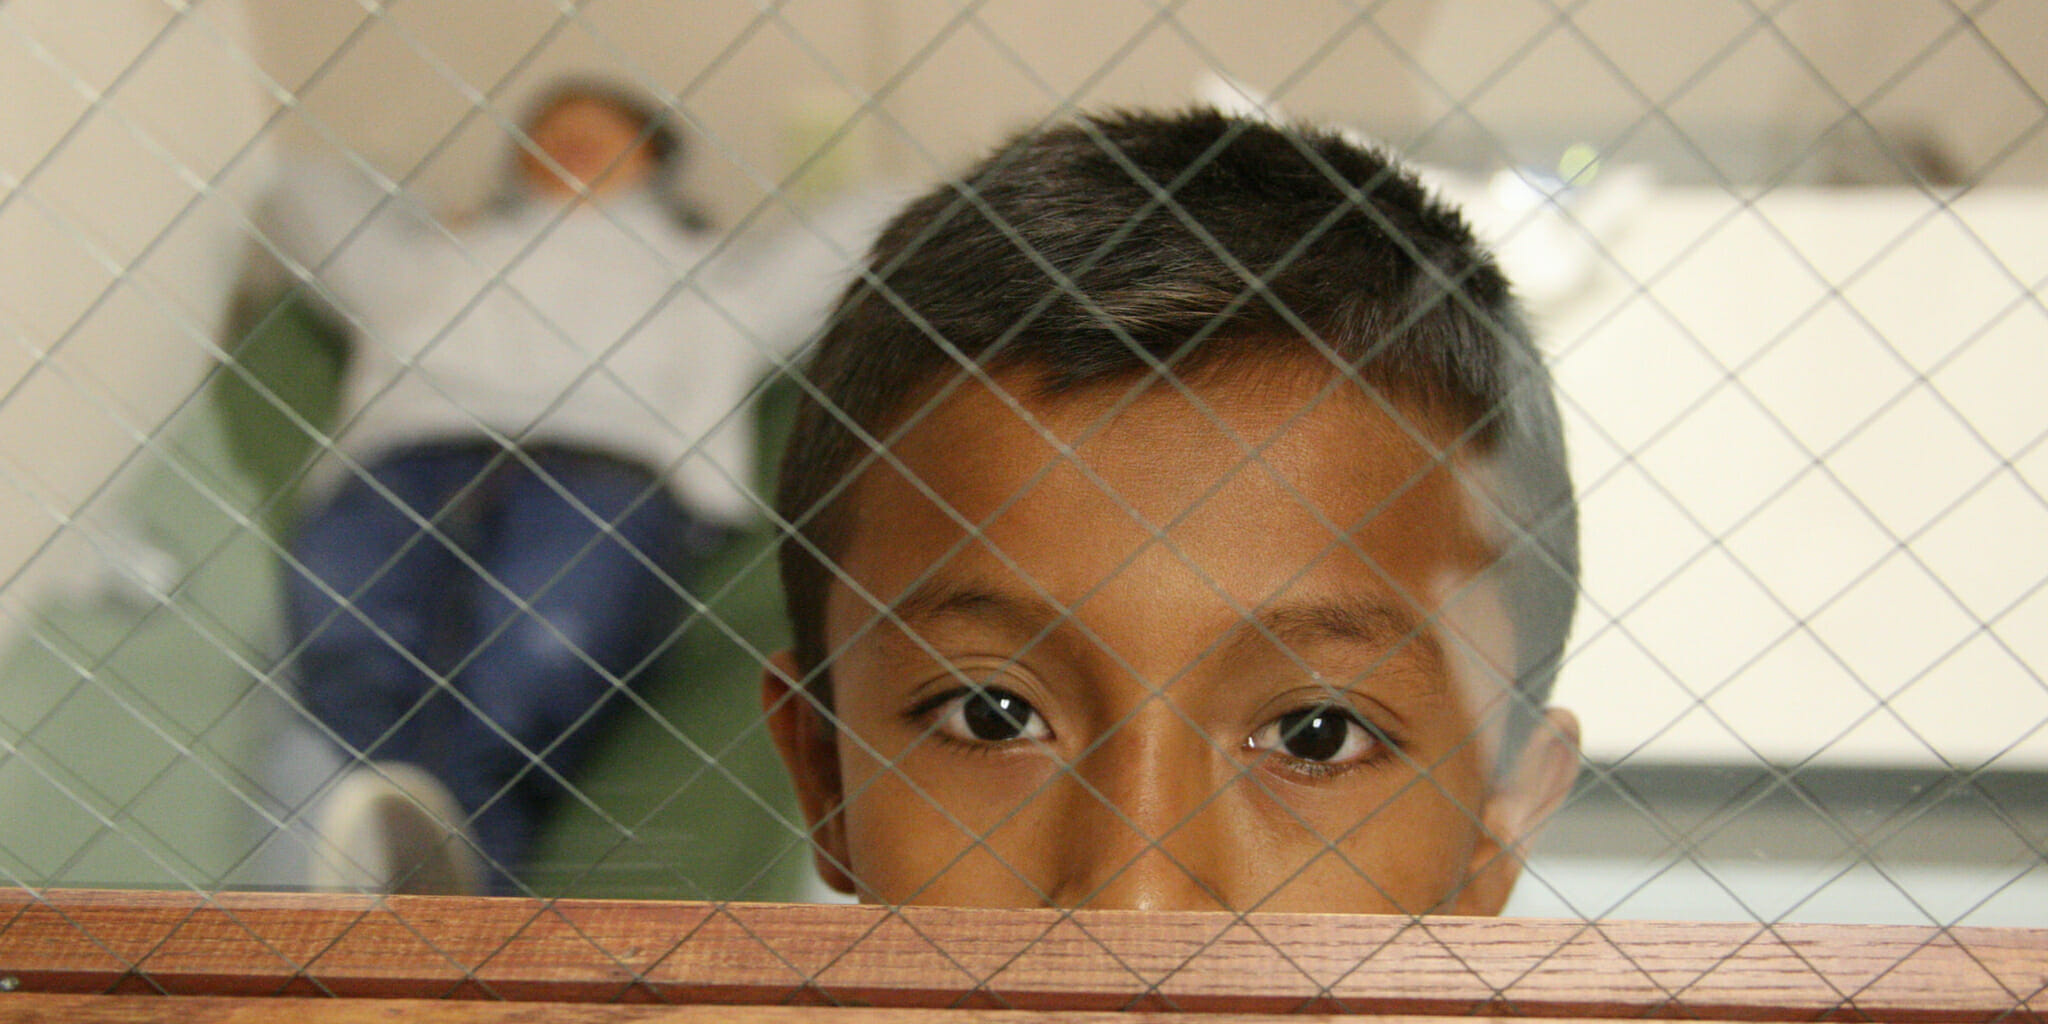 U.S. Customs and Border Protection houses unaccompanied migrant children who have crossed into the U.S.